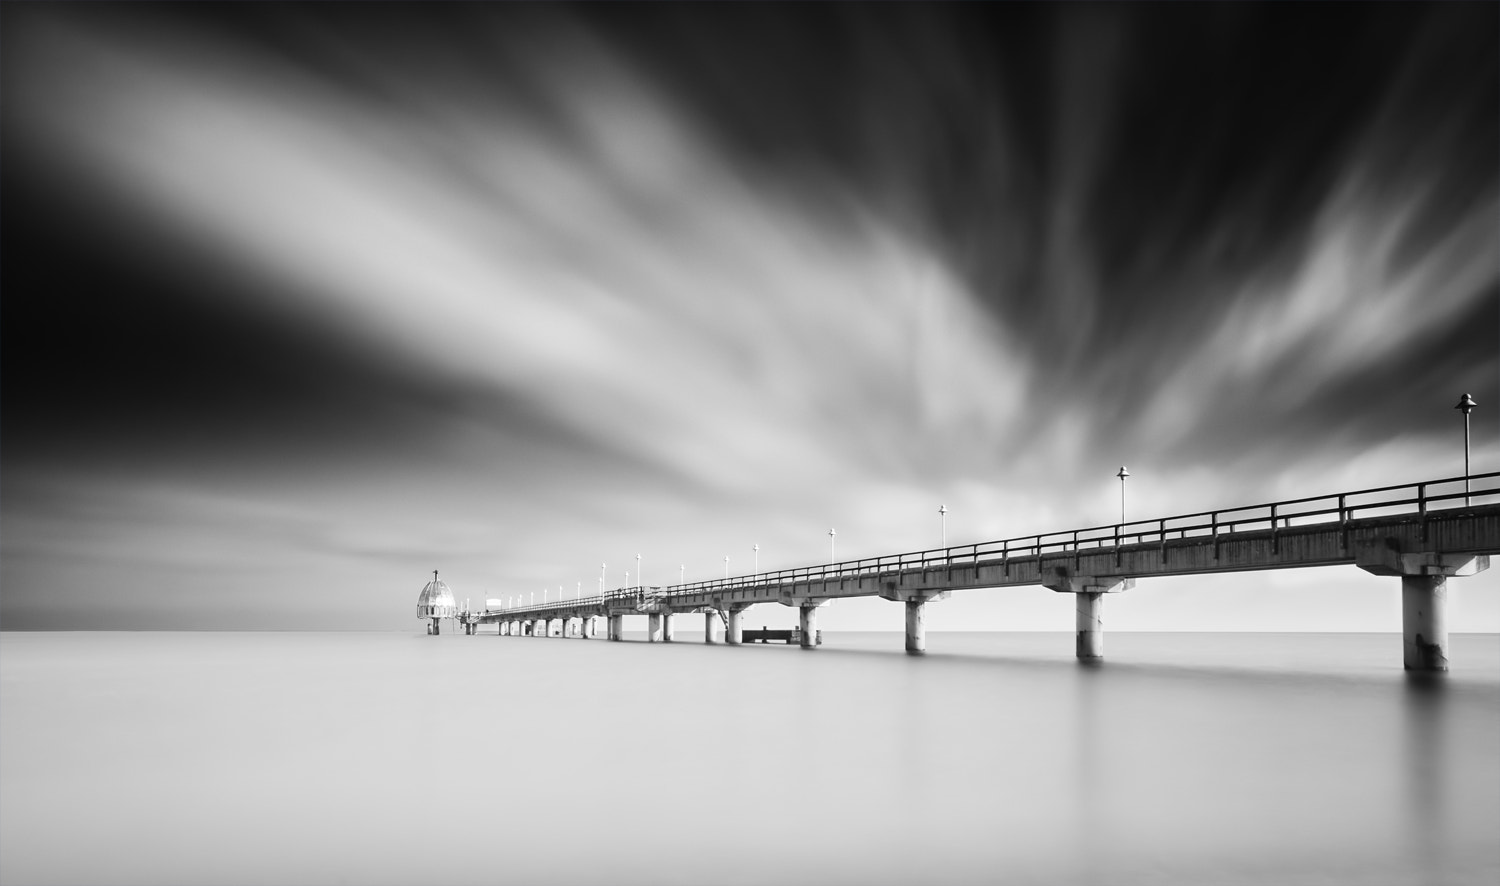 Photograph Usedom IX by Andreas  Wecker on 500px